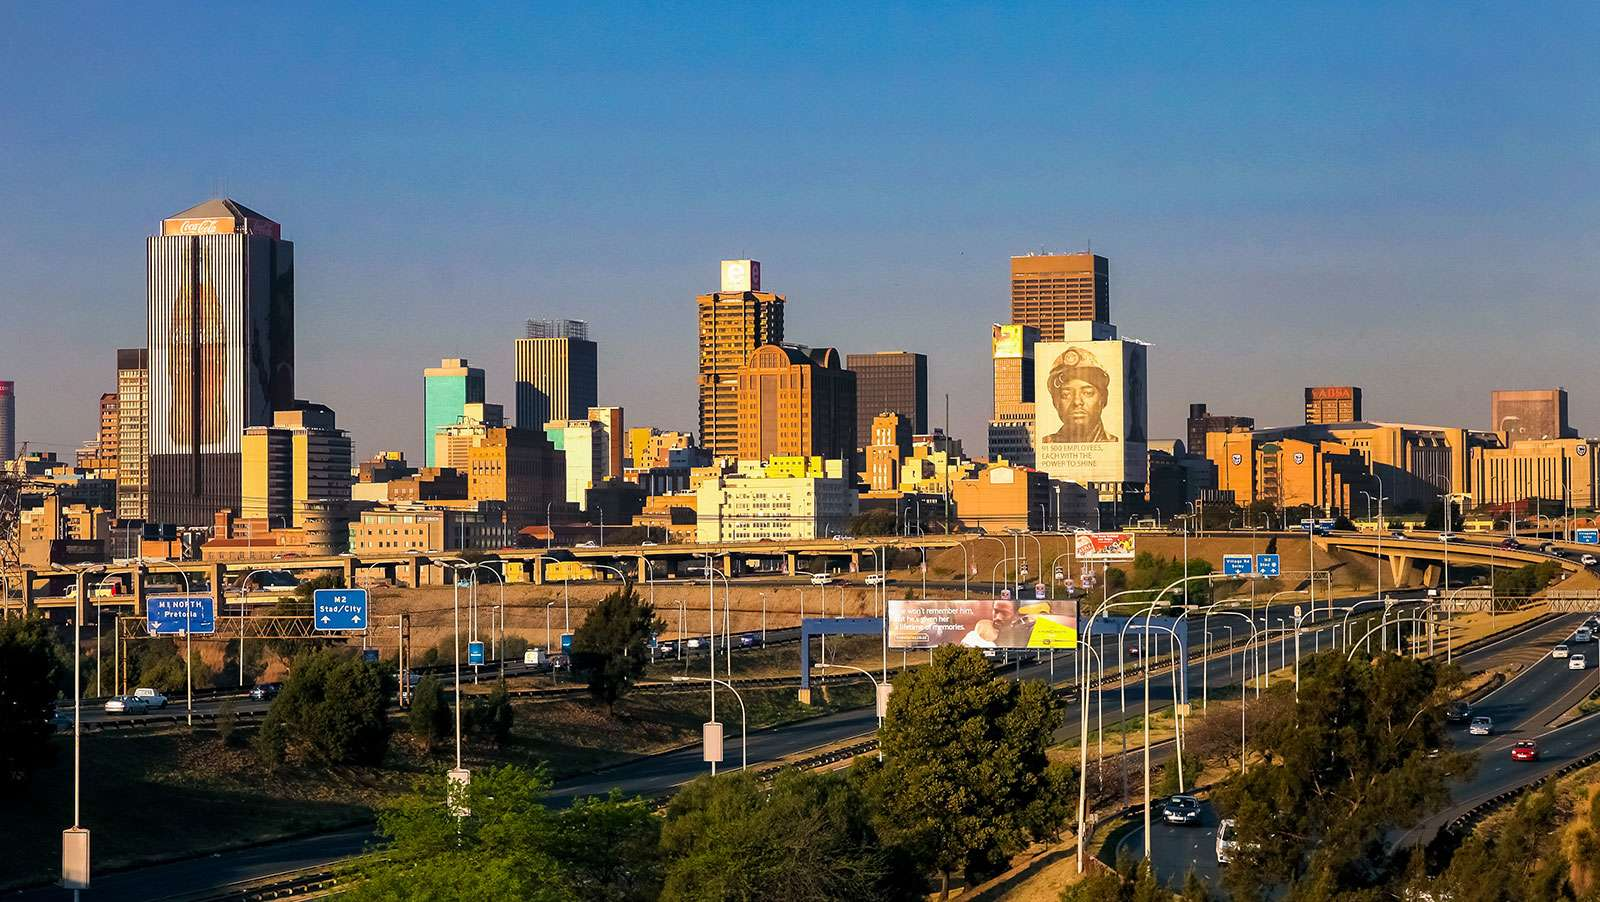 Illegal gambling grows in South Africa due to recession